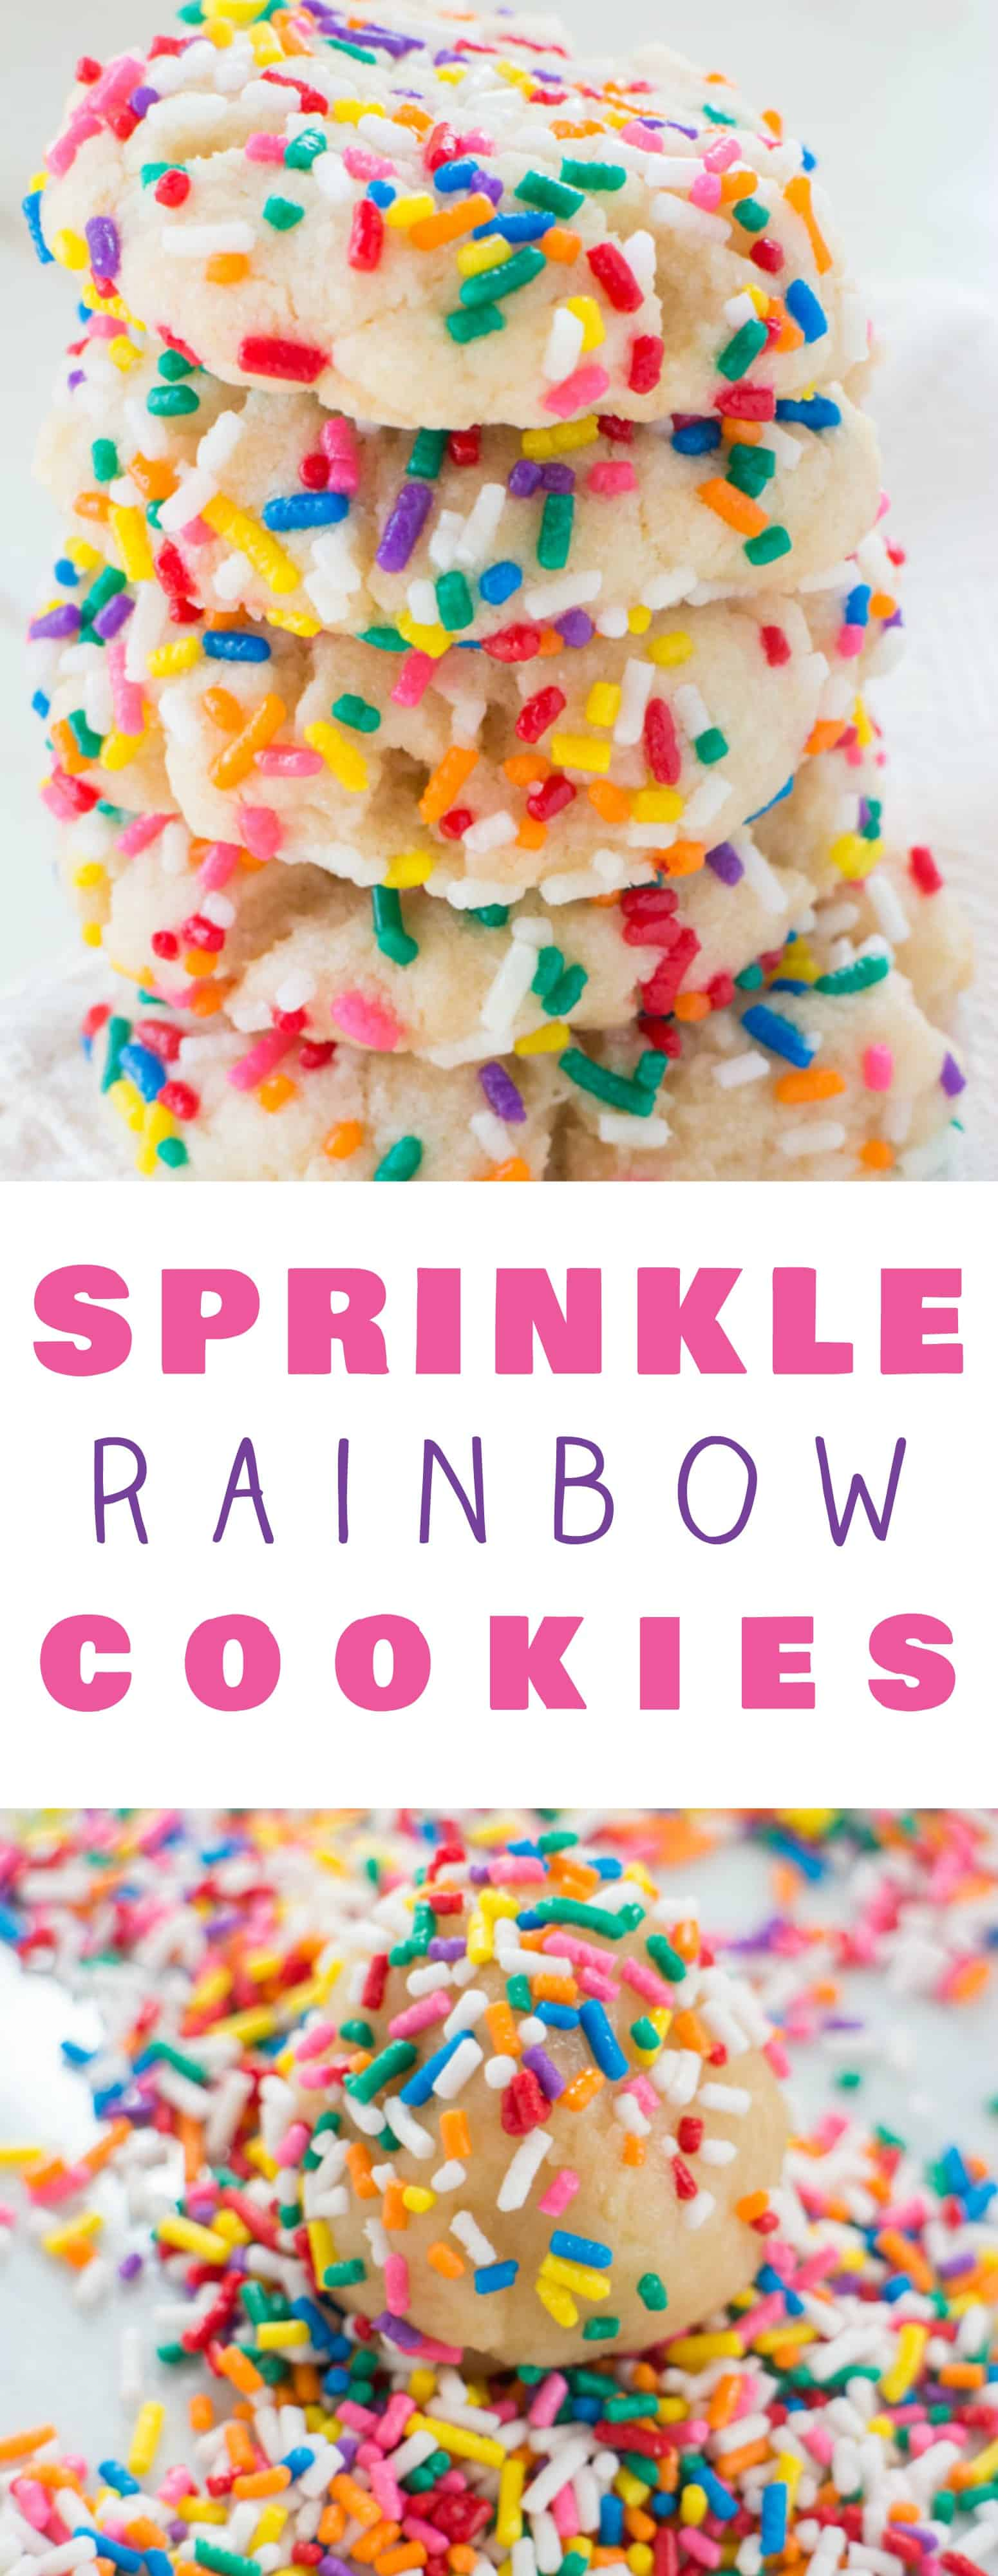 RAINBOW Sprinkled Butter Cookies! These delicious cookies are easy to make and uses evaporated milk to make the cookies extra soft! They melt in your mouth! Roll them around in colored sprinkles to make them more fun! Recipe makes 2 dozen cookies.